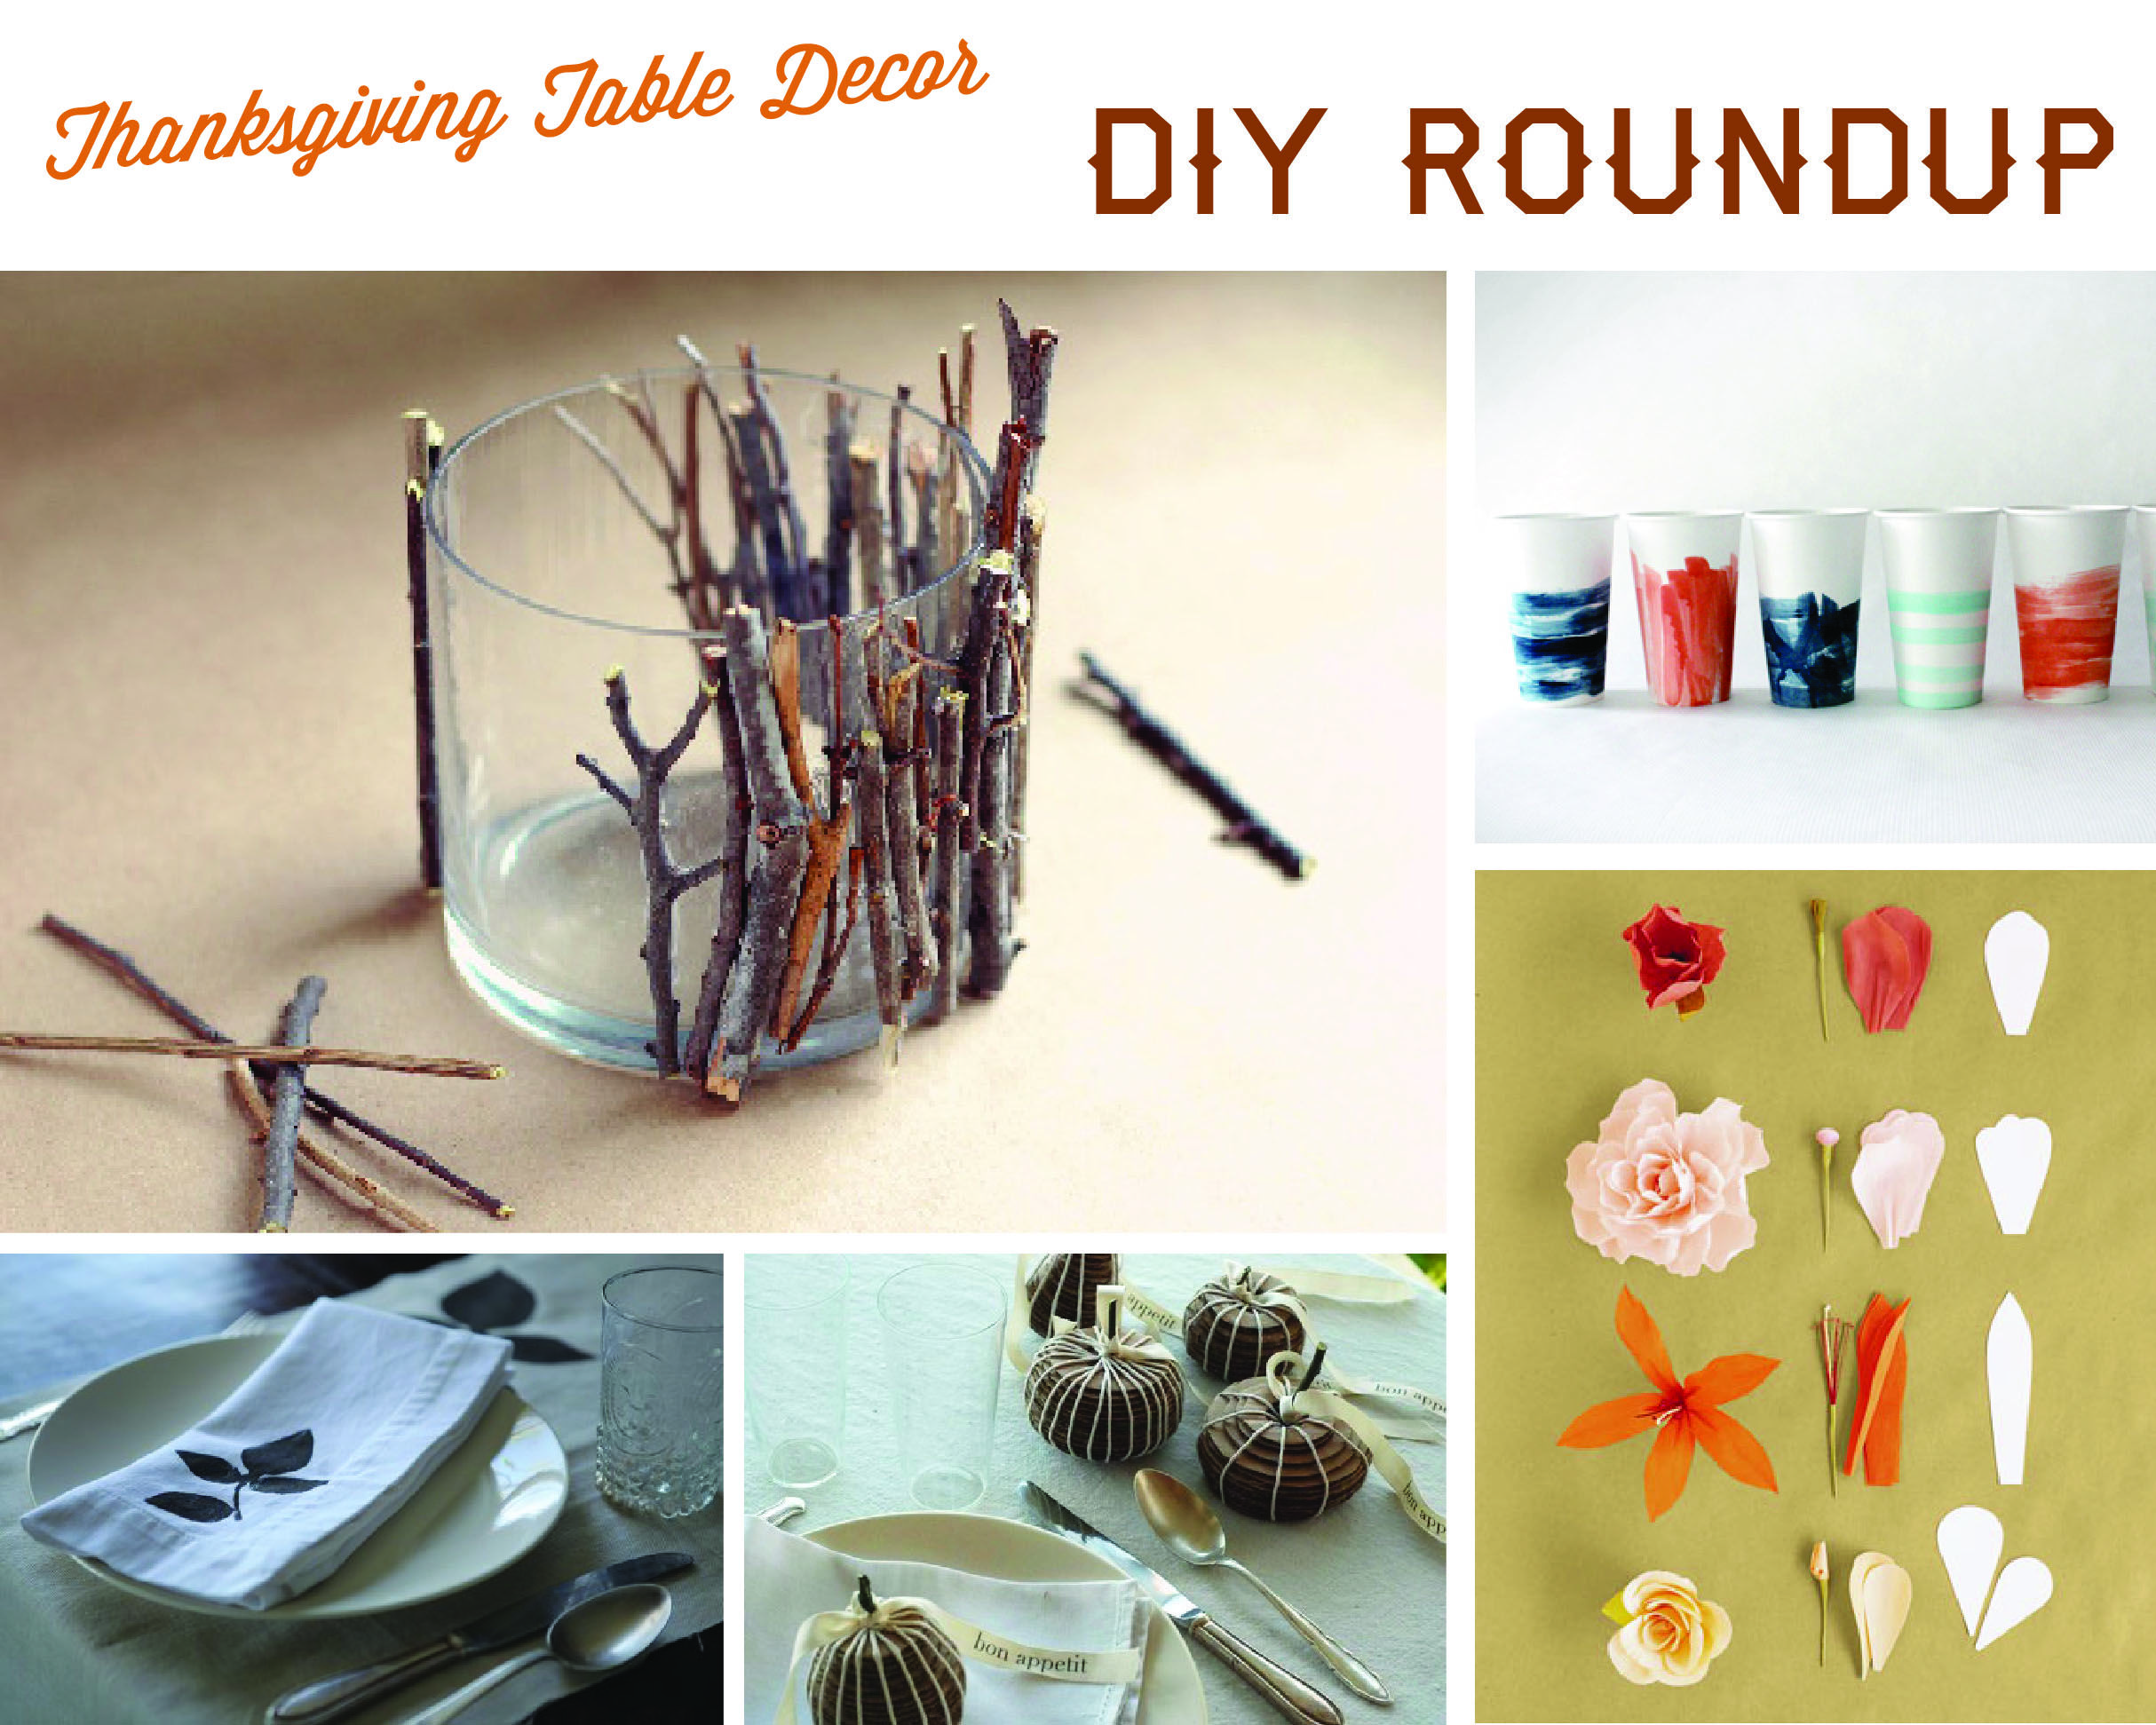 Thanksgiving DIY Roundup + Renegade Craft Fair by Margo ...